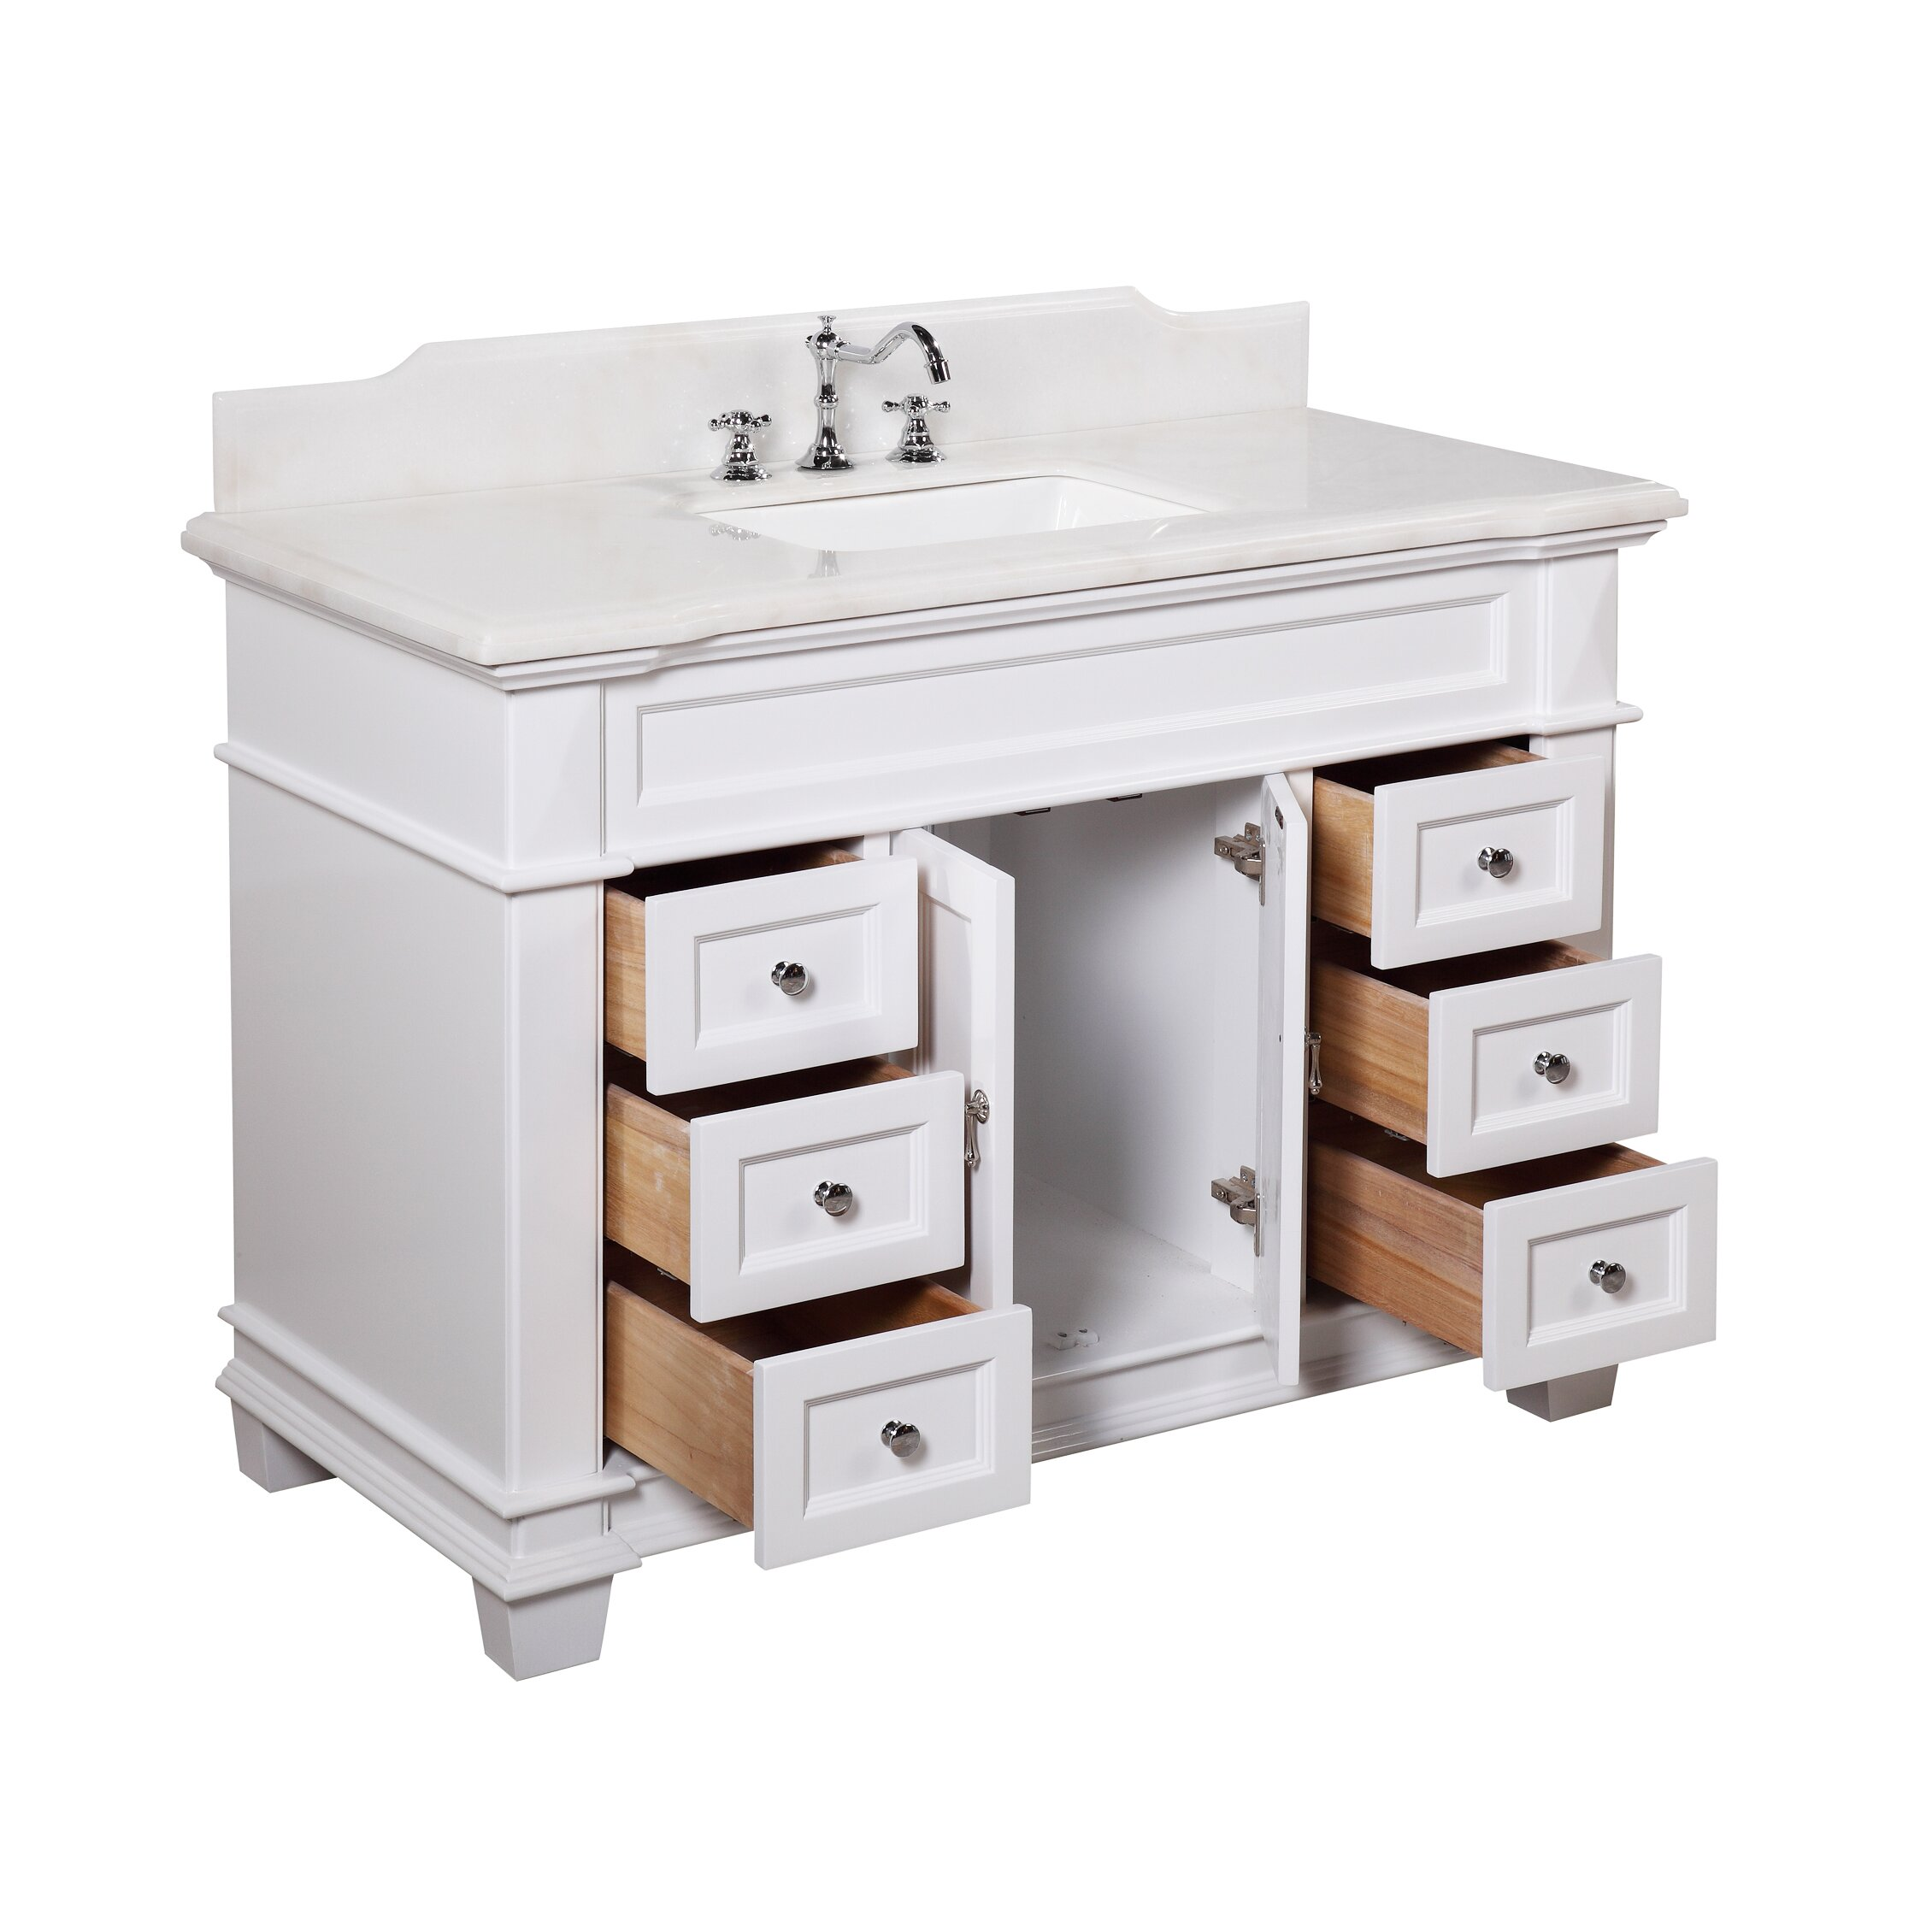 Kbc elizabeth 48 single bathroom vanity set reviews for Bath and vanity set